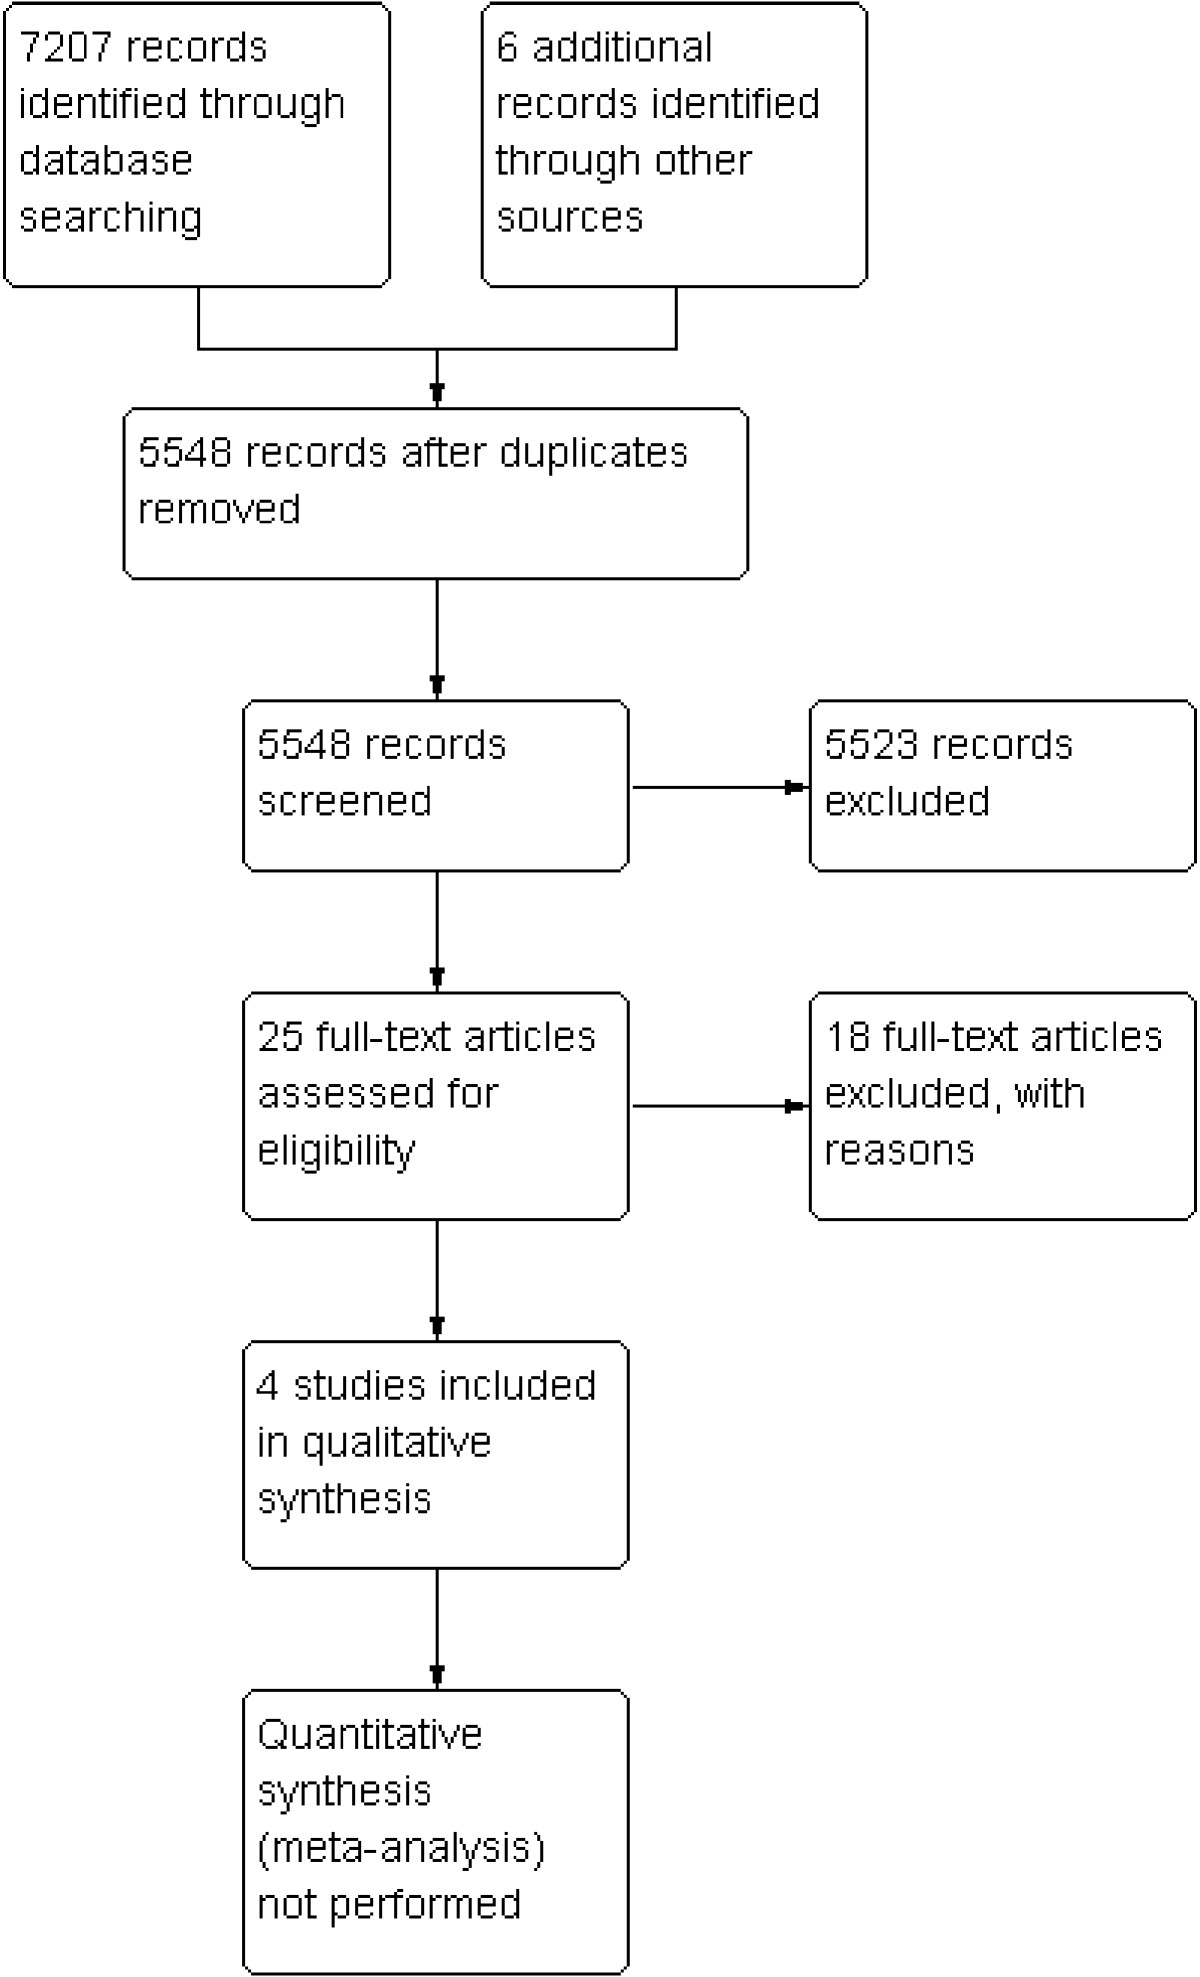 https://static-content.springer.com/image/art%3A10.1186%2F2046-4053-2-3/MediaObjects/13643_2012_Article_64_Fig1_HTML.jpg